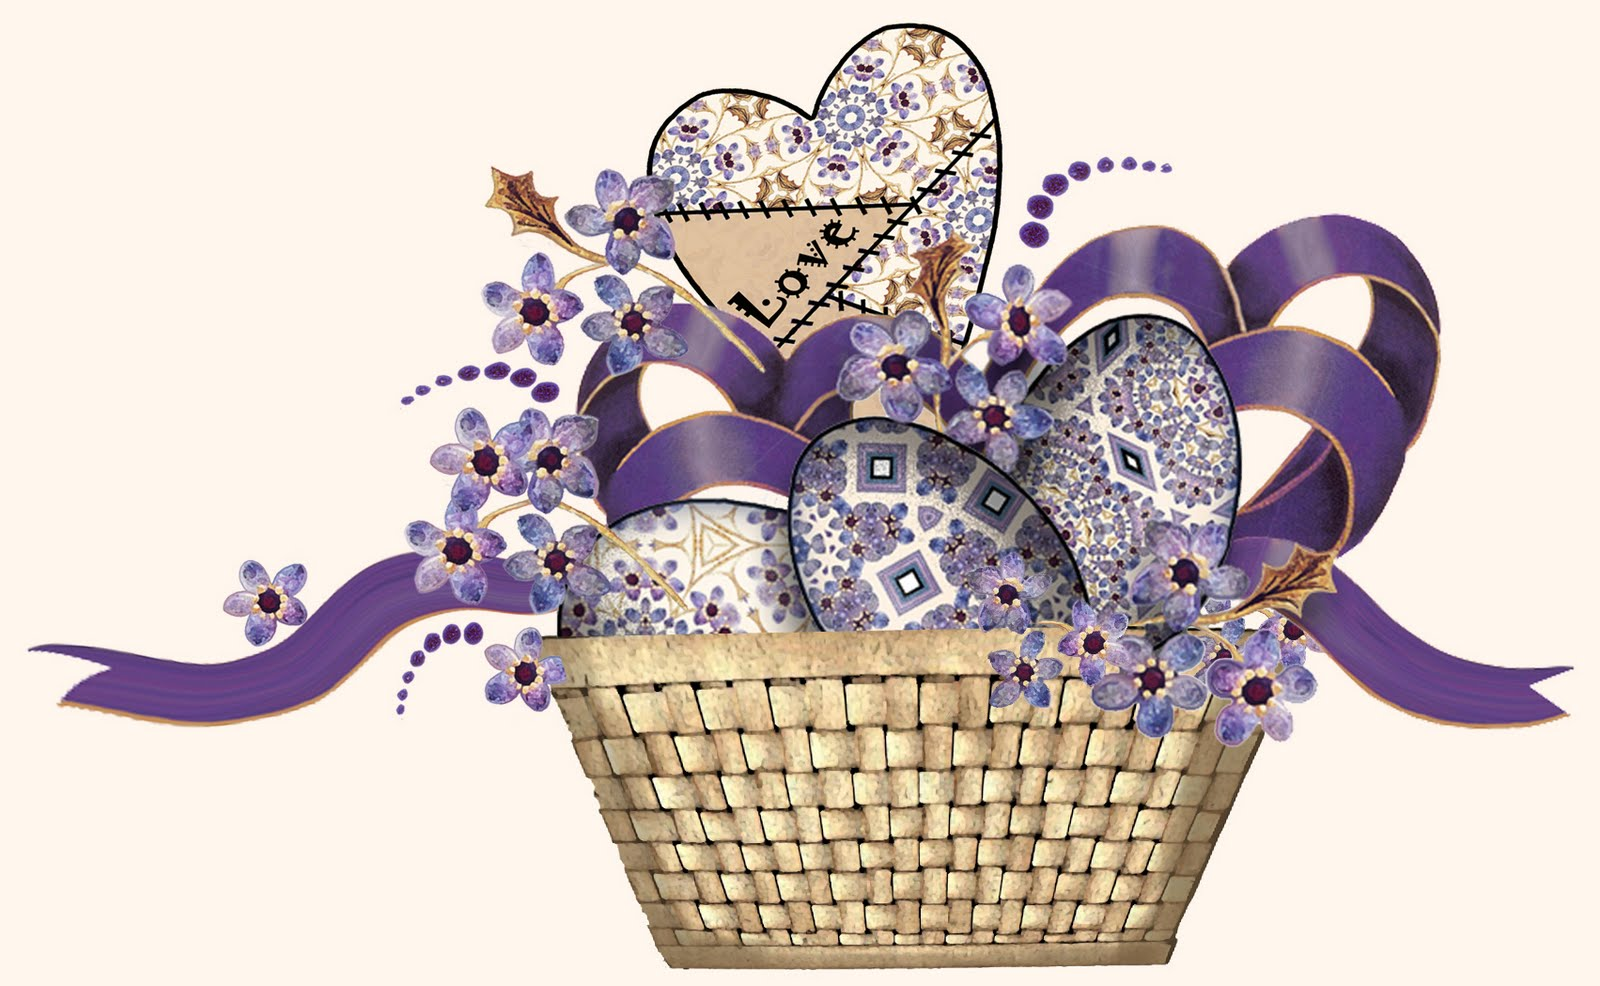 Gift Basket Clipart : Artbyjean purple wood roses basket of eggs and